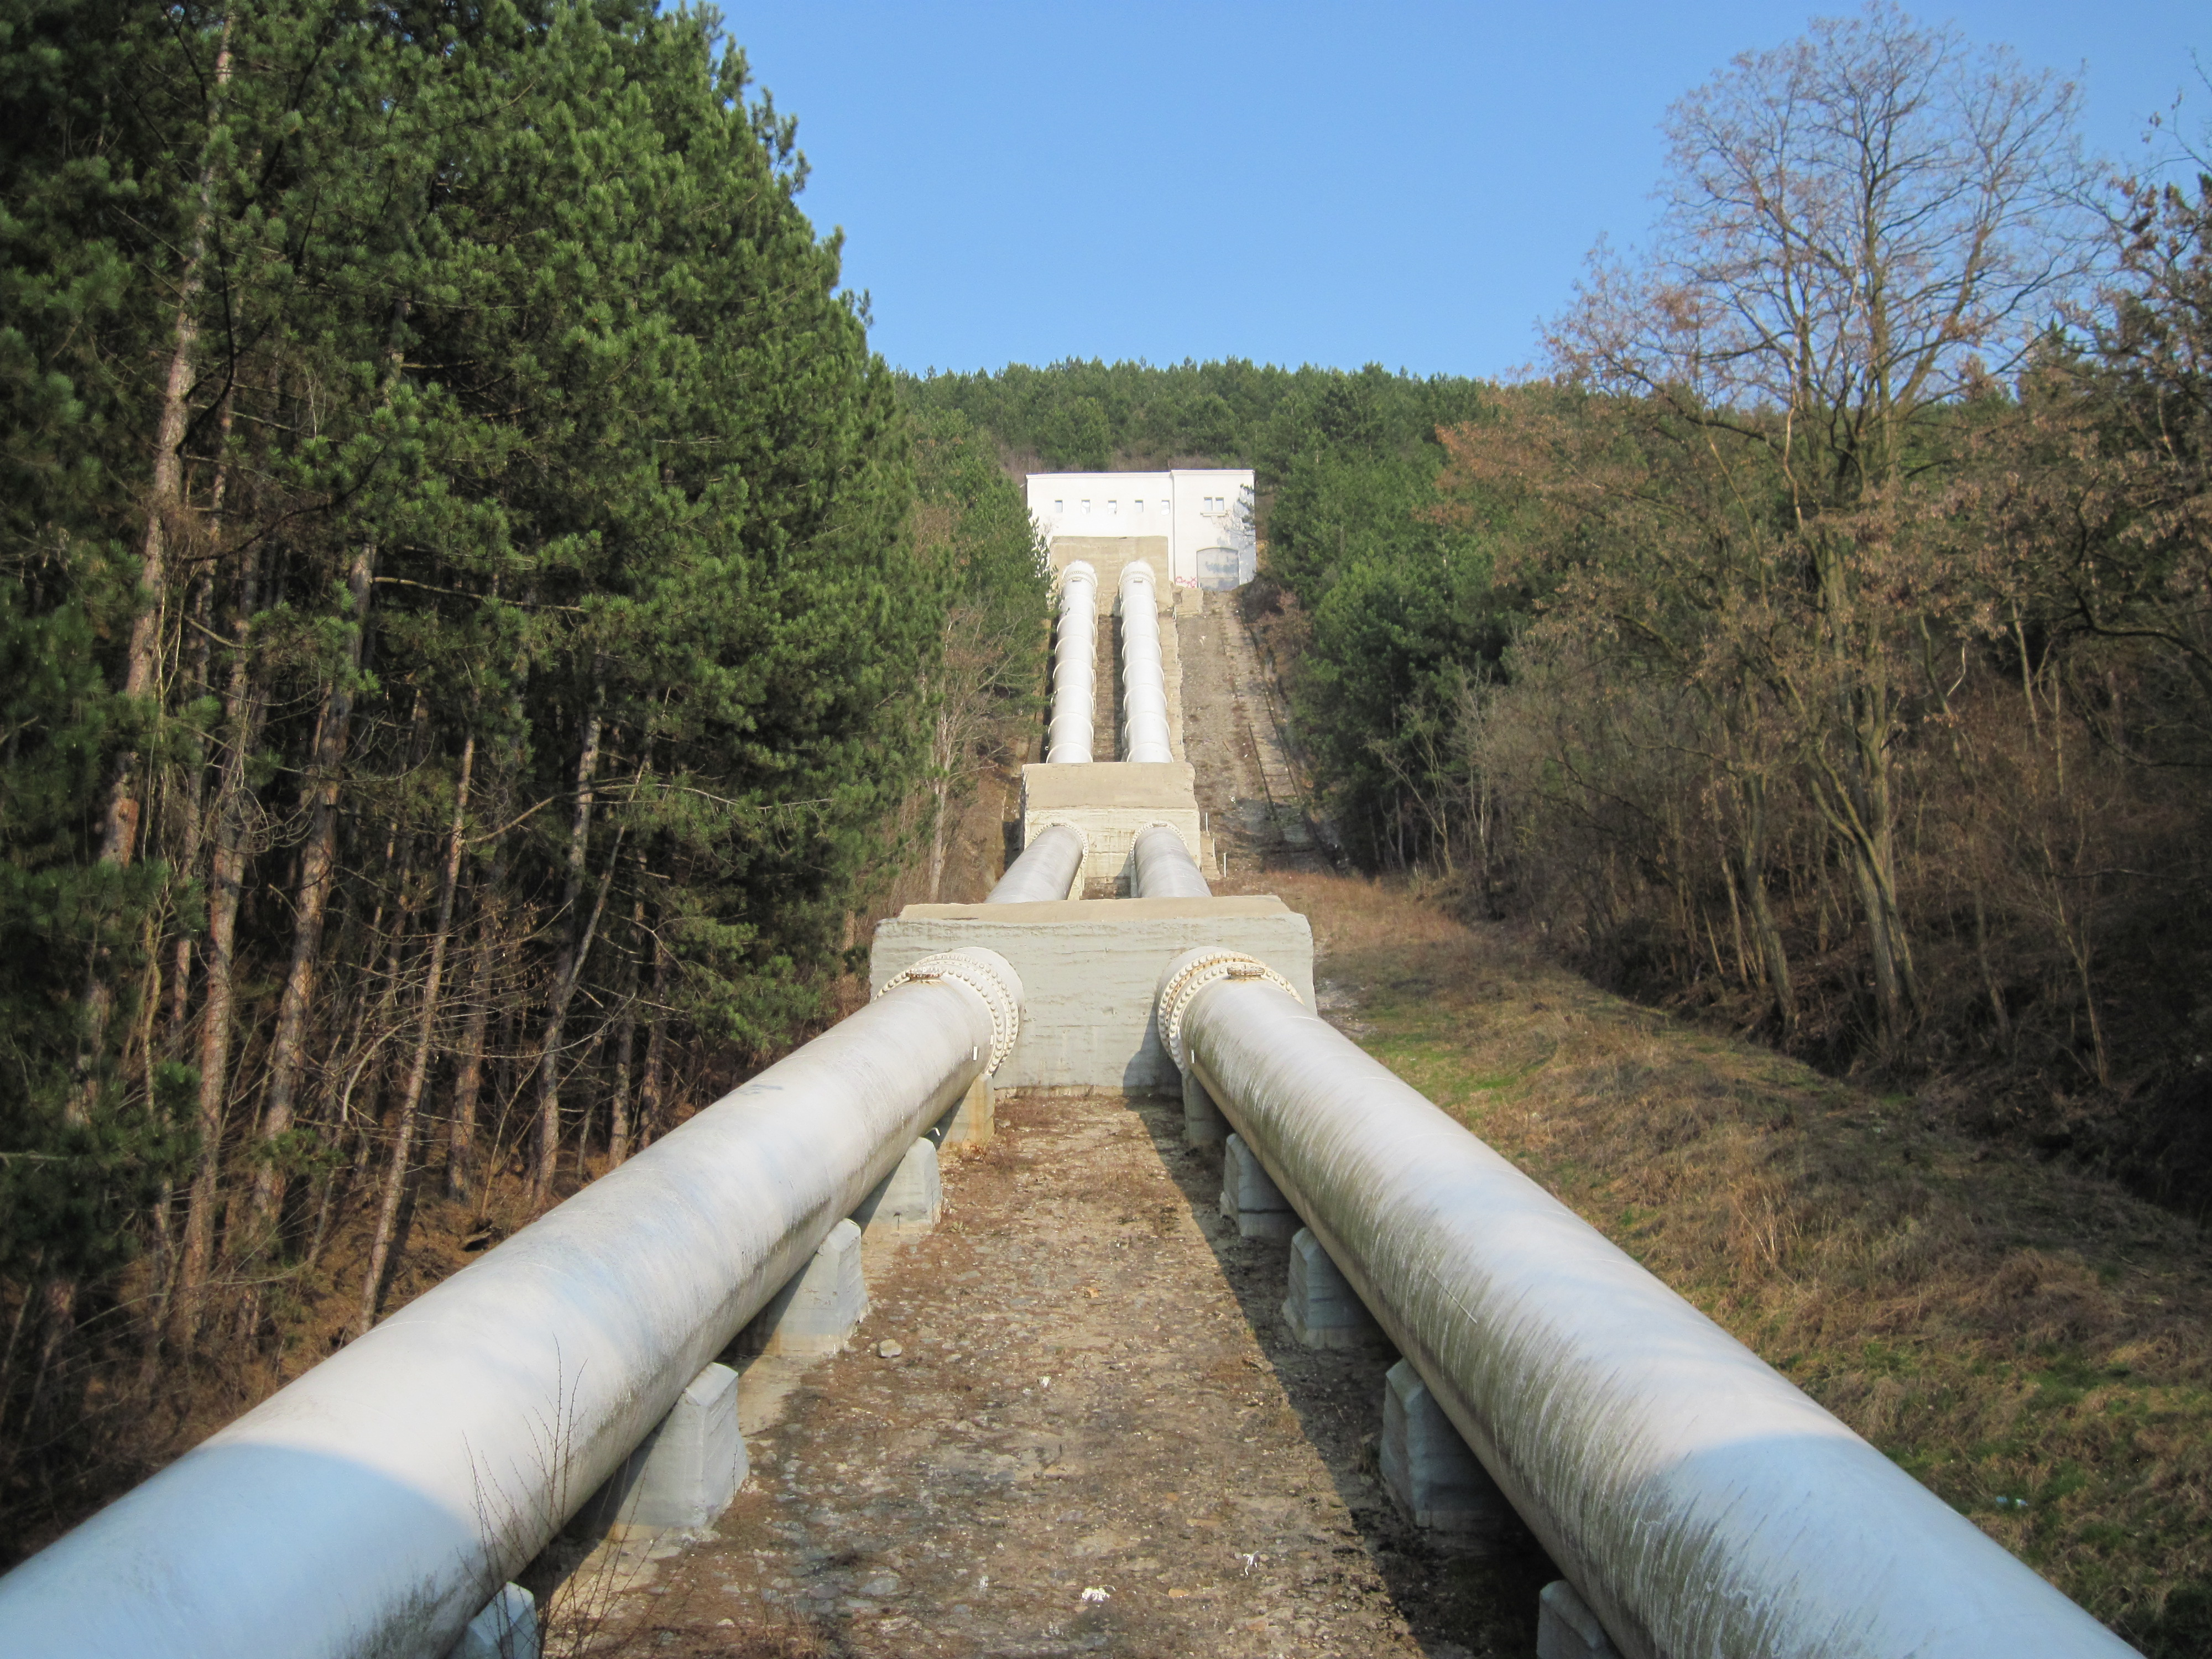 Pipelines Catching Some Rays: Solar Energy in Cathodic Protection